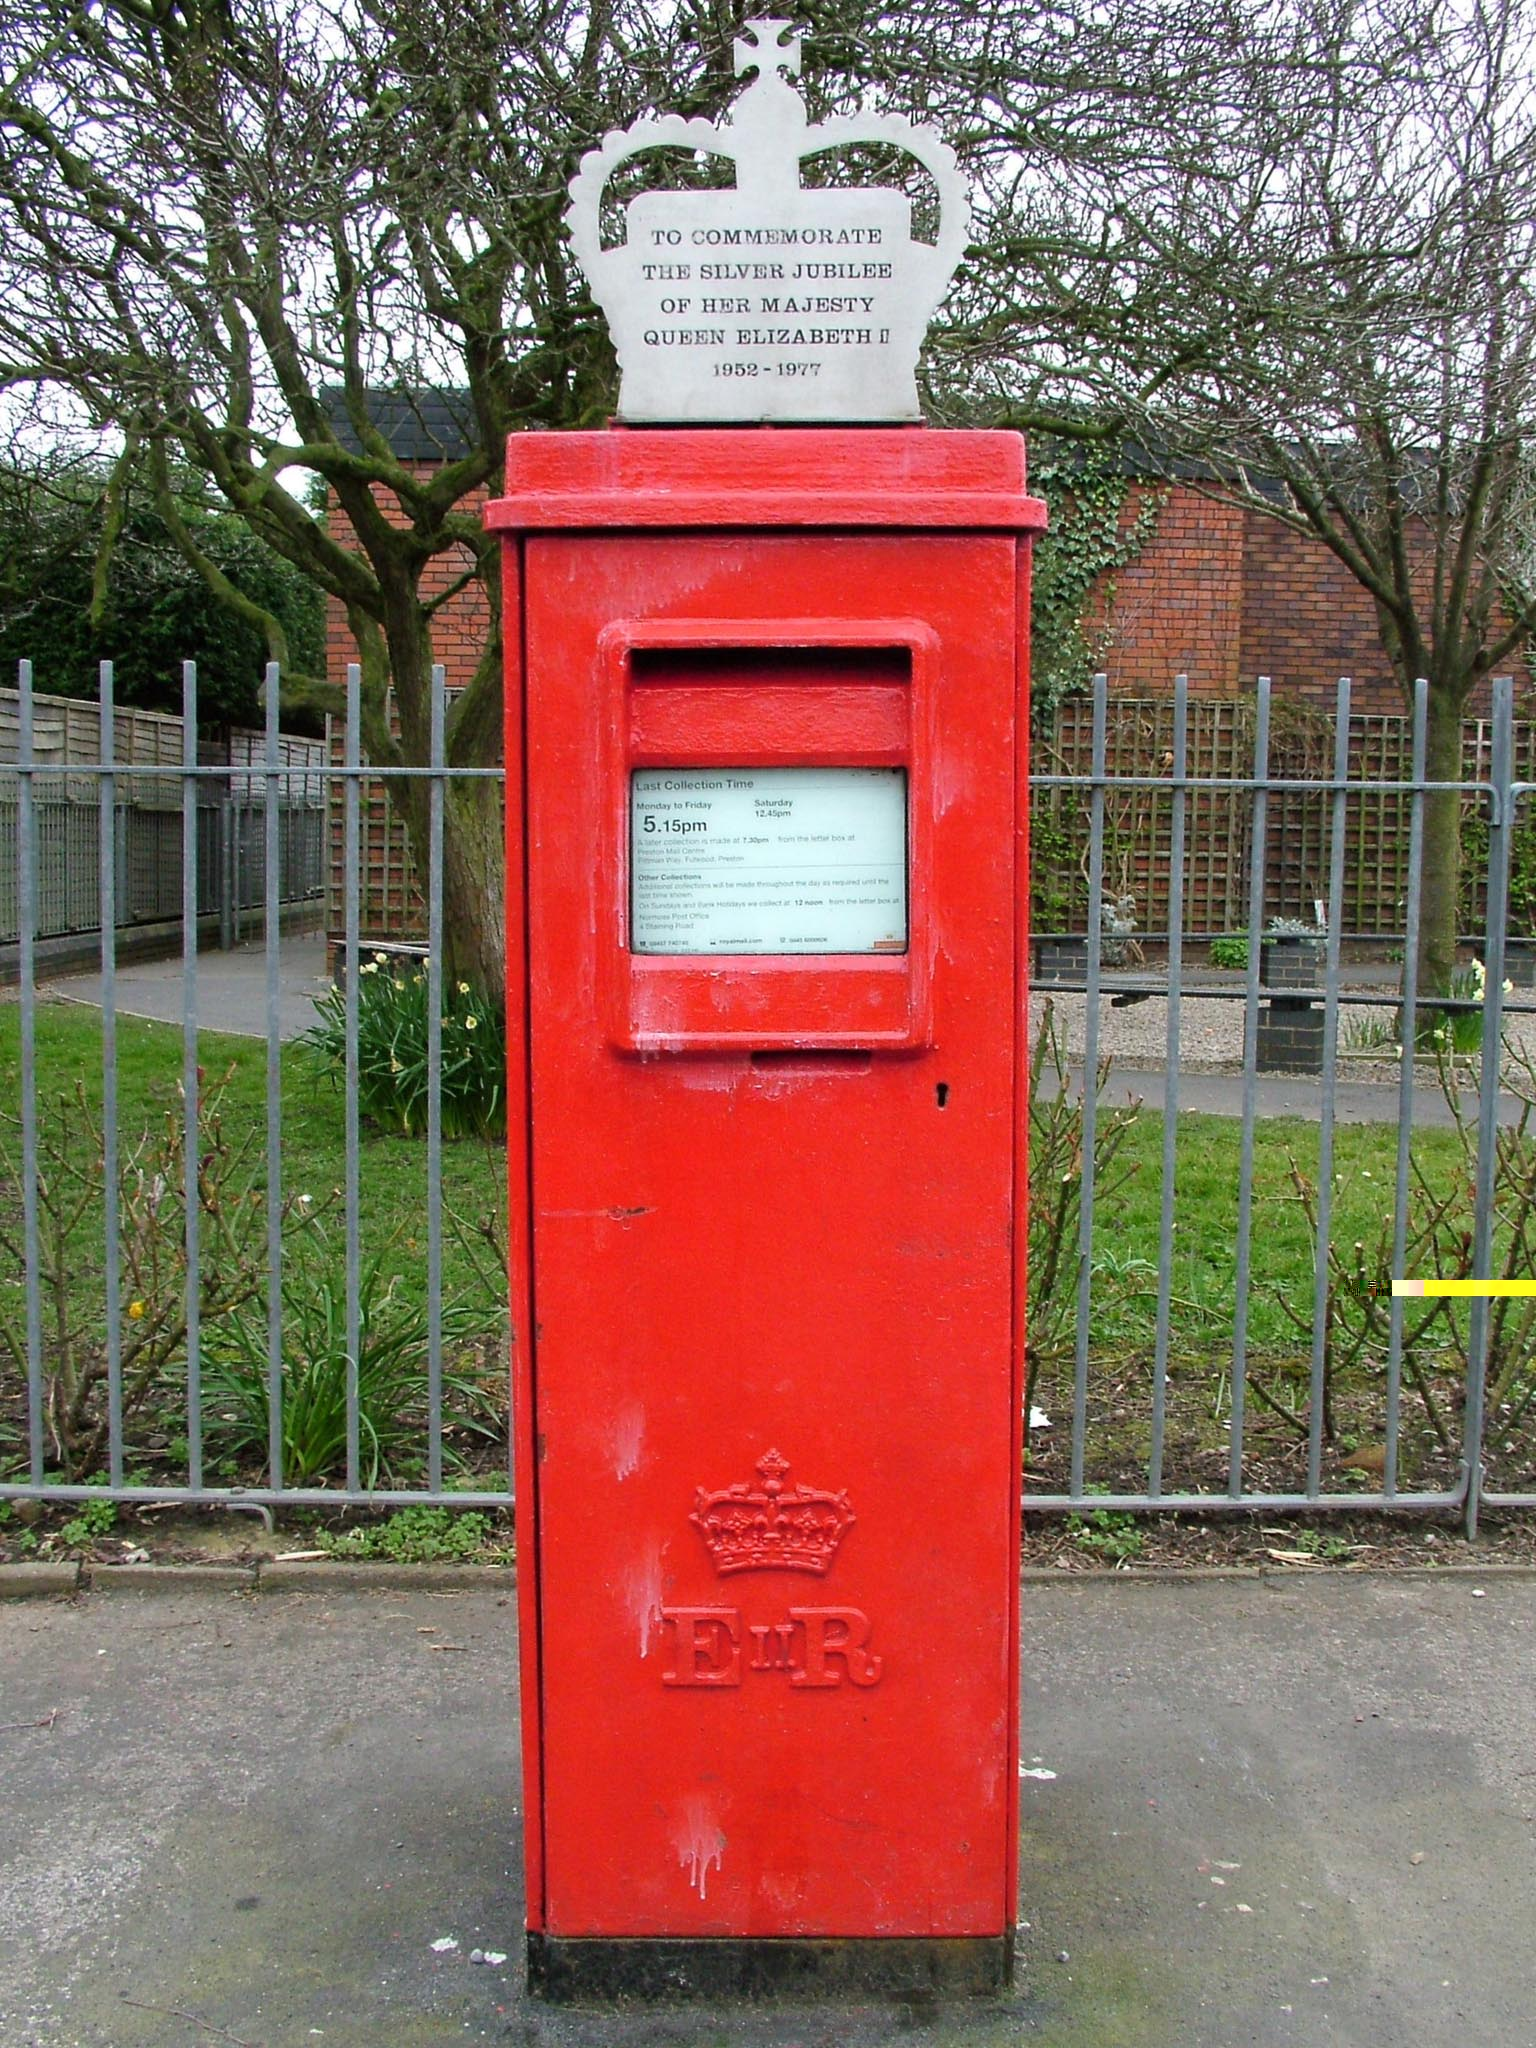 E2R pillar box, 1970s, Lancs. Gerry Cork